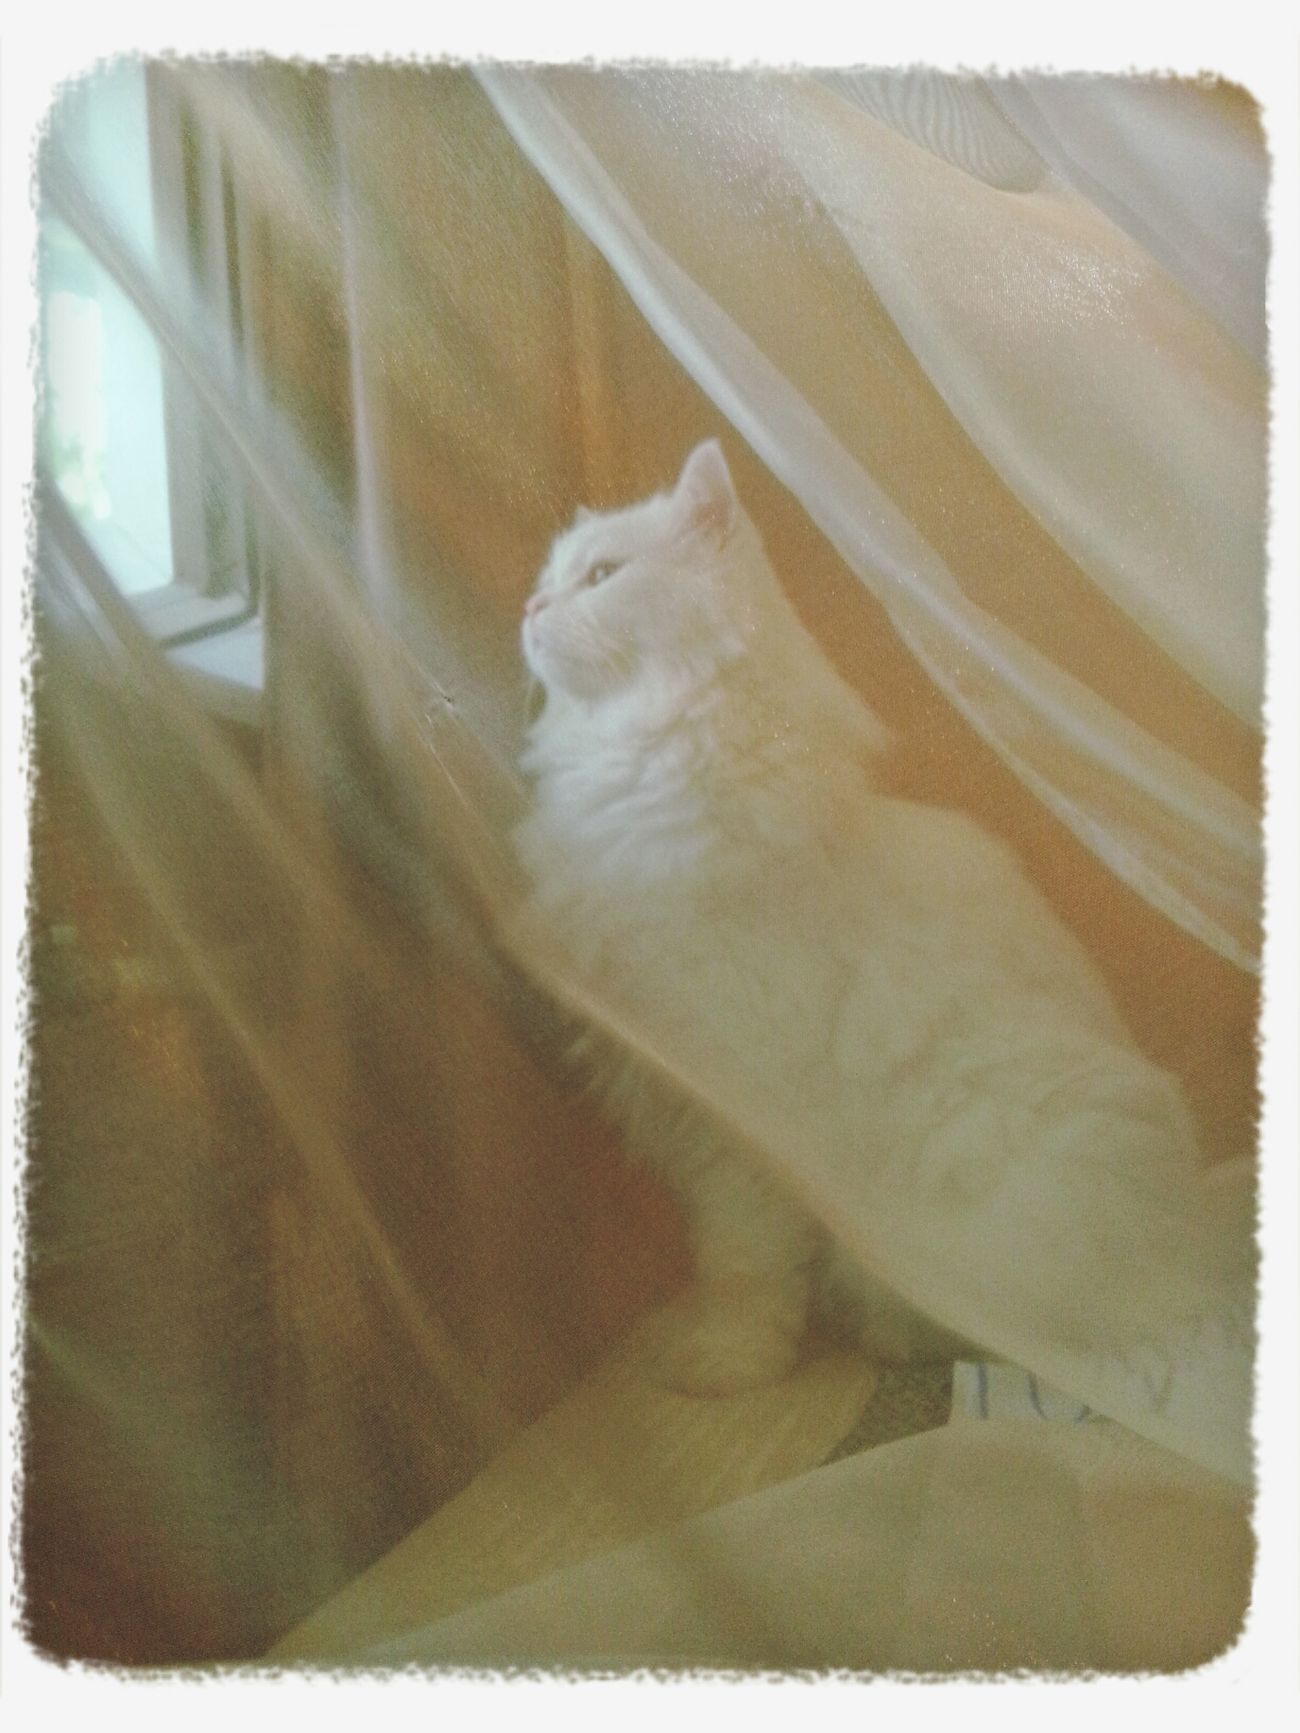 my kitty posing ))) First Eyeem Photo